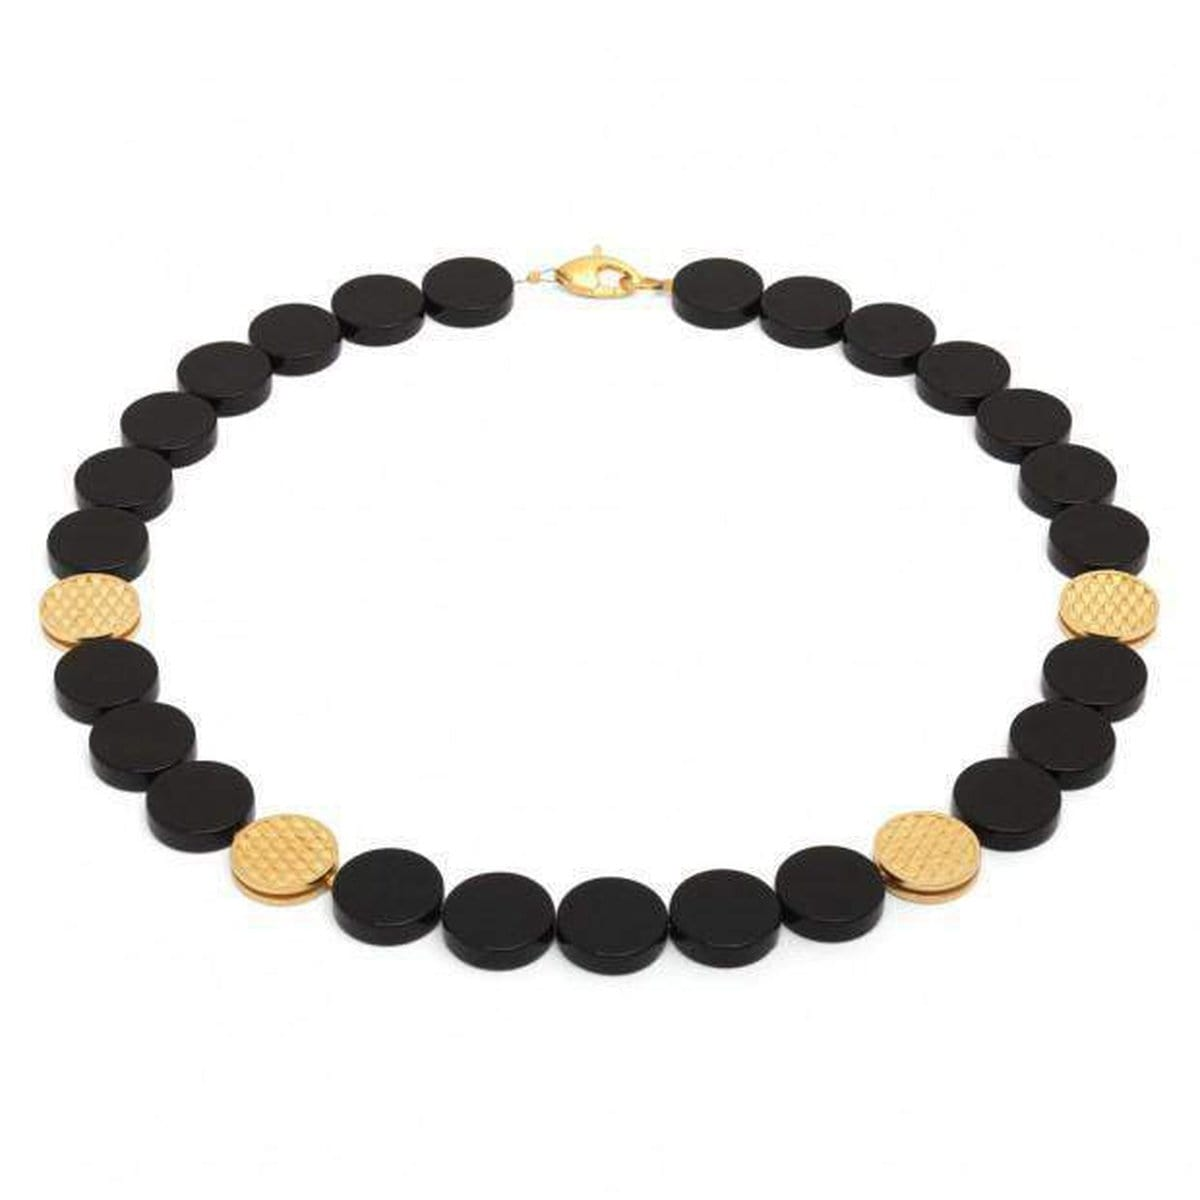 Mescier Onyx Necklace - 81028806-Bernd Wolf-Renee Taylor Gallery